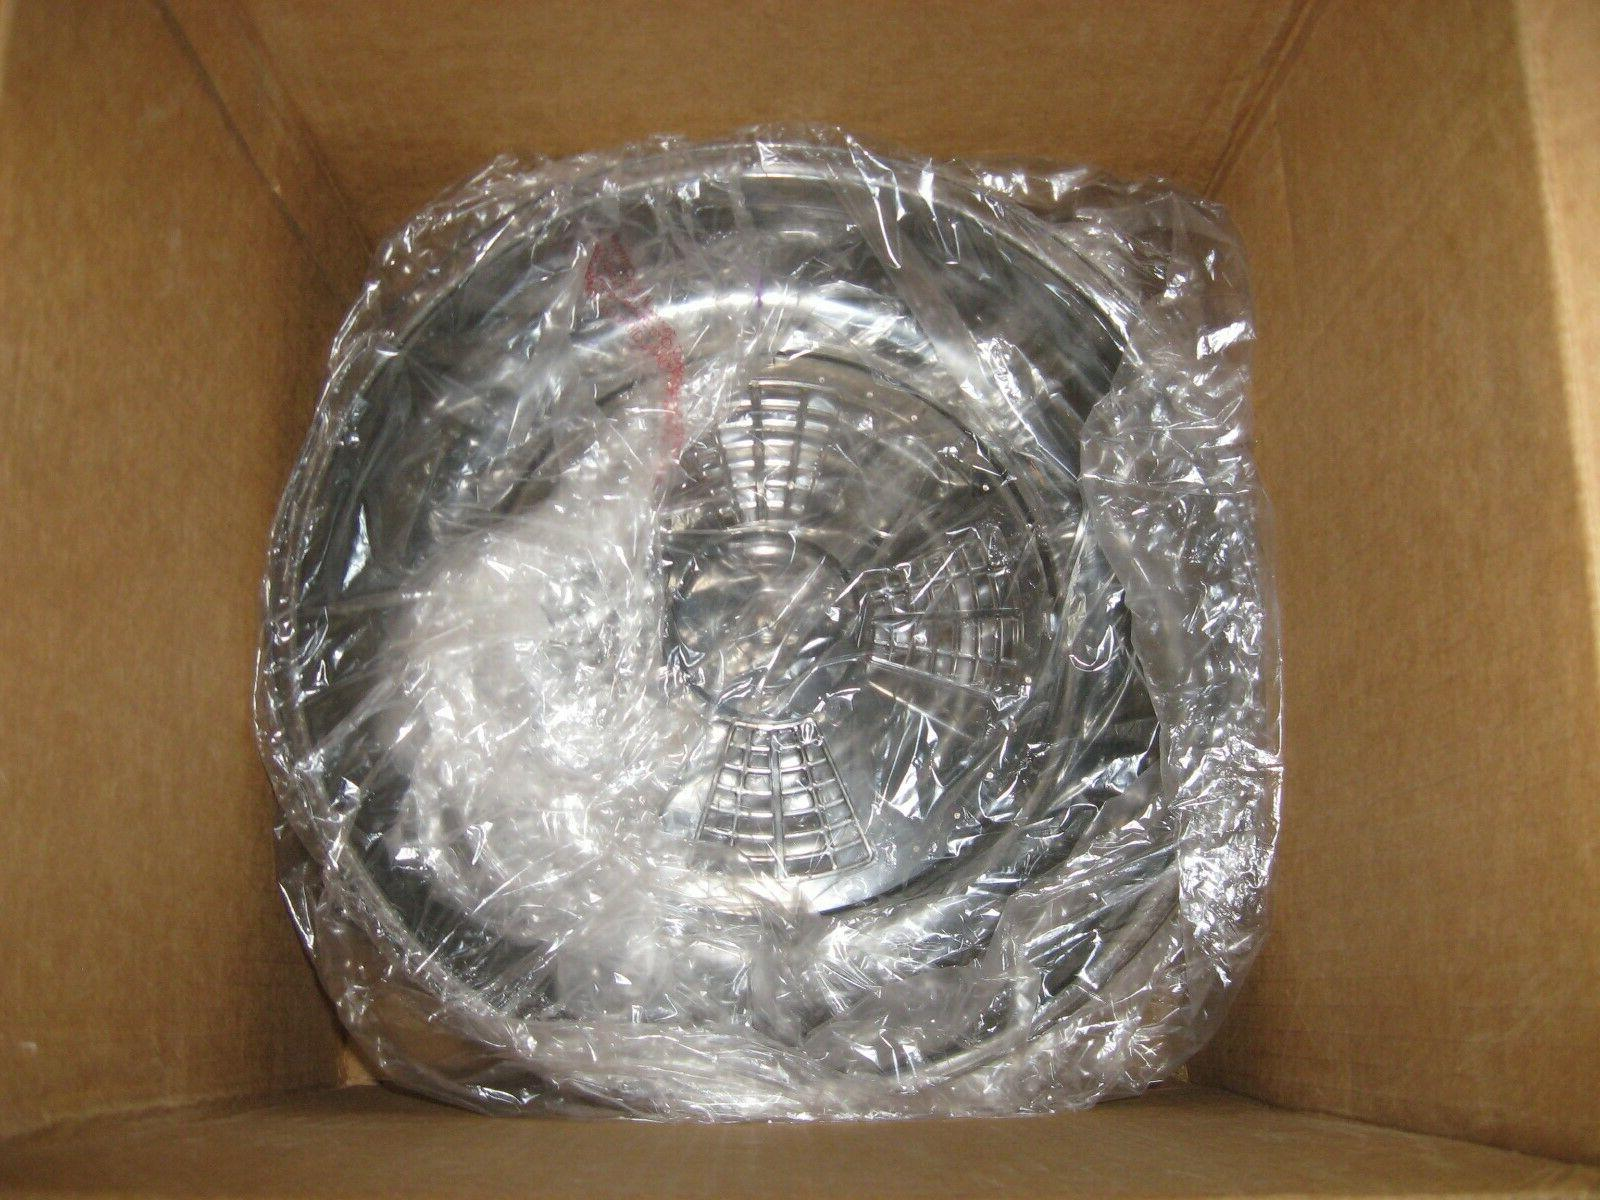 Ronco 5-Tray Dehydrator Dial-O-Matic New